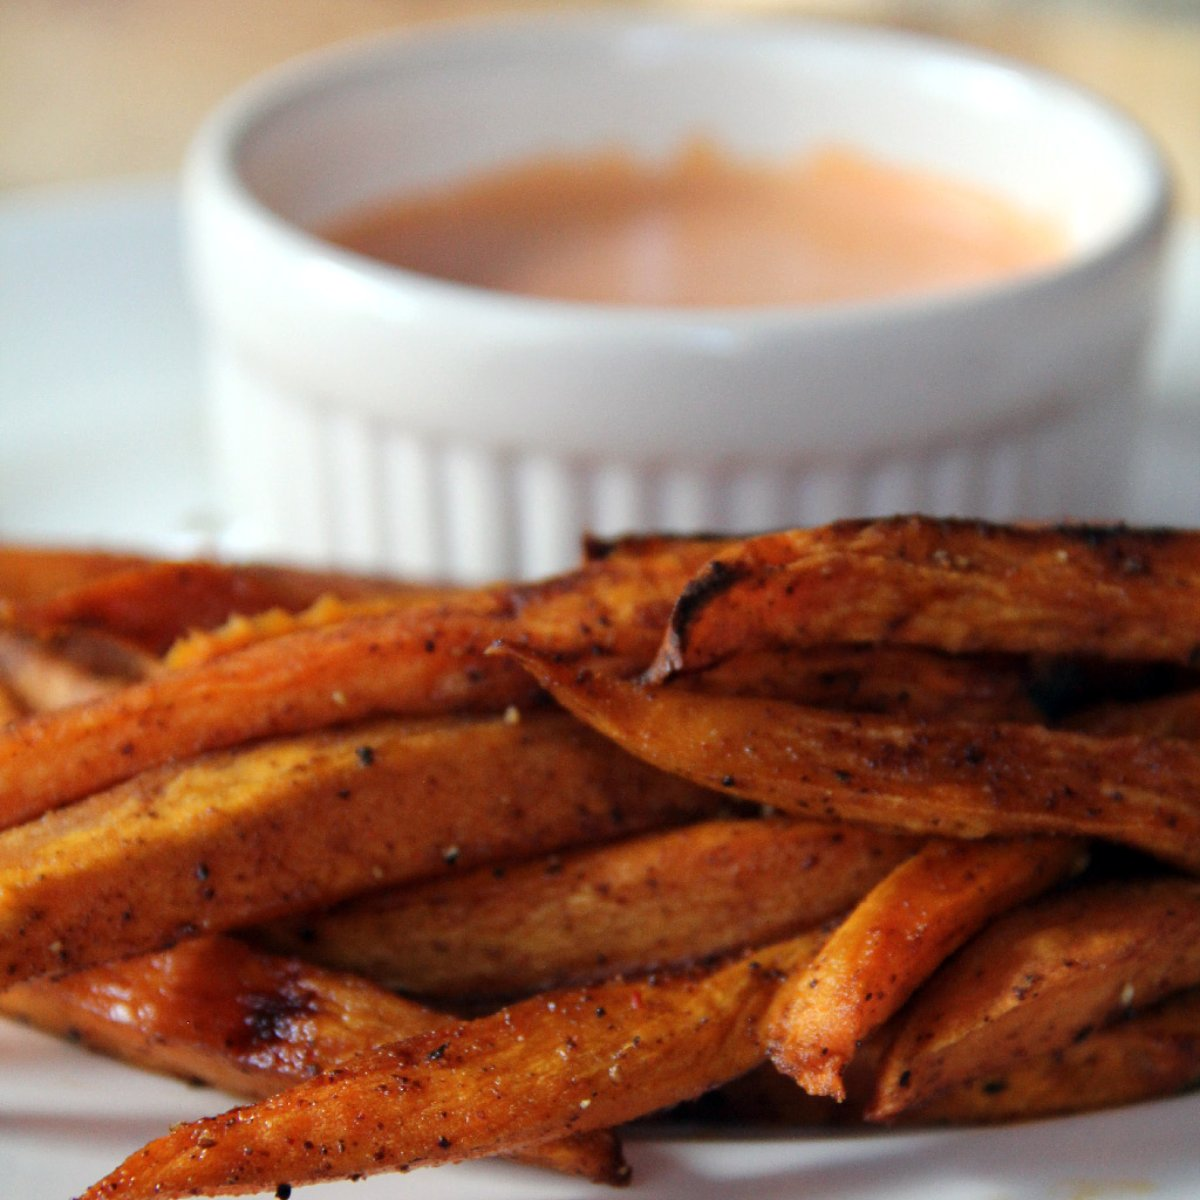 Homemade Sweet Potato Fries — these oven baked sweet potato fries are just the right mix of sweet and spicy!